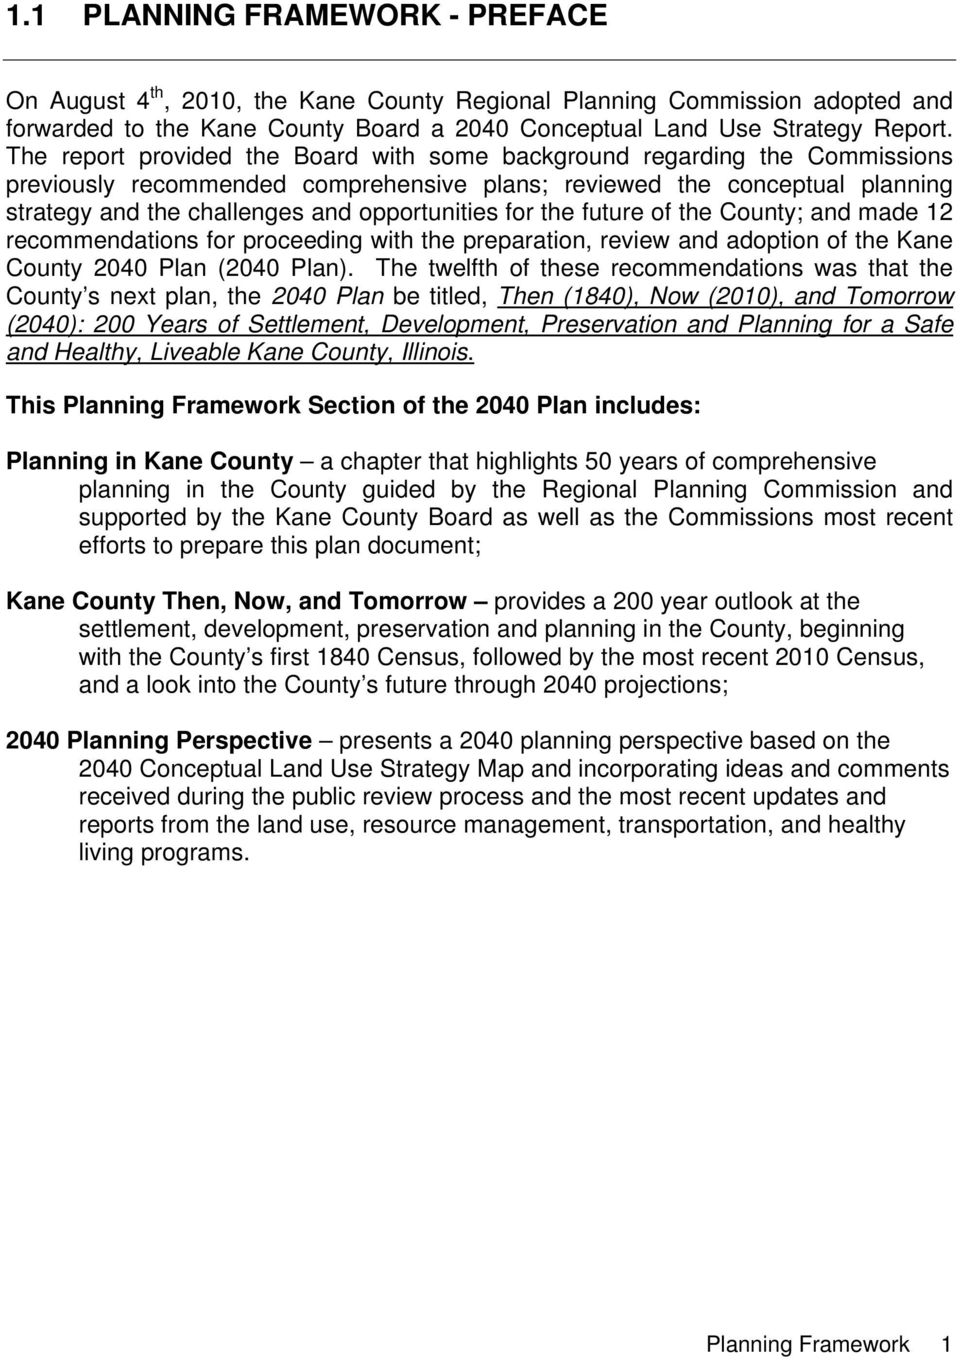 for the future of the County; and made 12 recommendations for proceeding with the preparation, review and adoption of the Kane County 2040 Plan (2040 Plan).